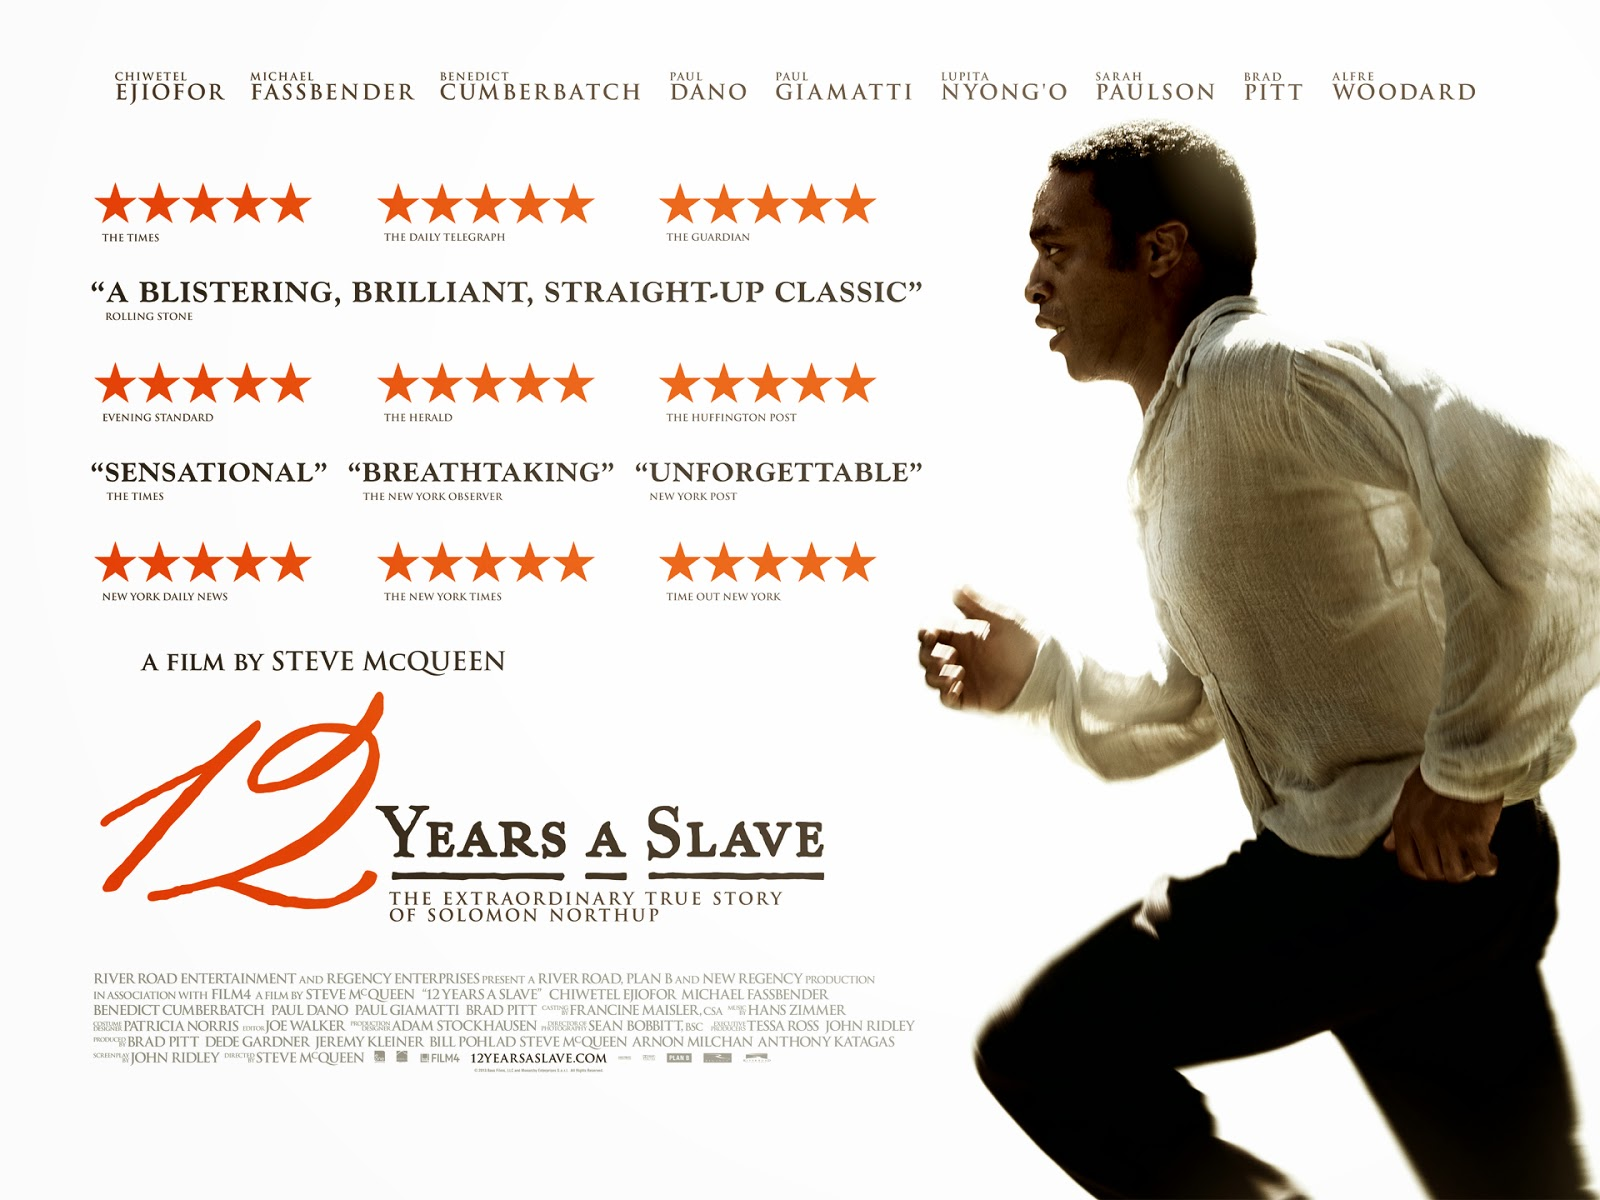 12 Years A Slave wins the Oscar for Best Picture at the 2014 Academy Awards